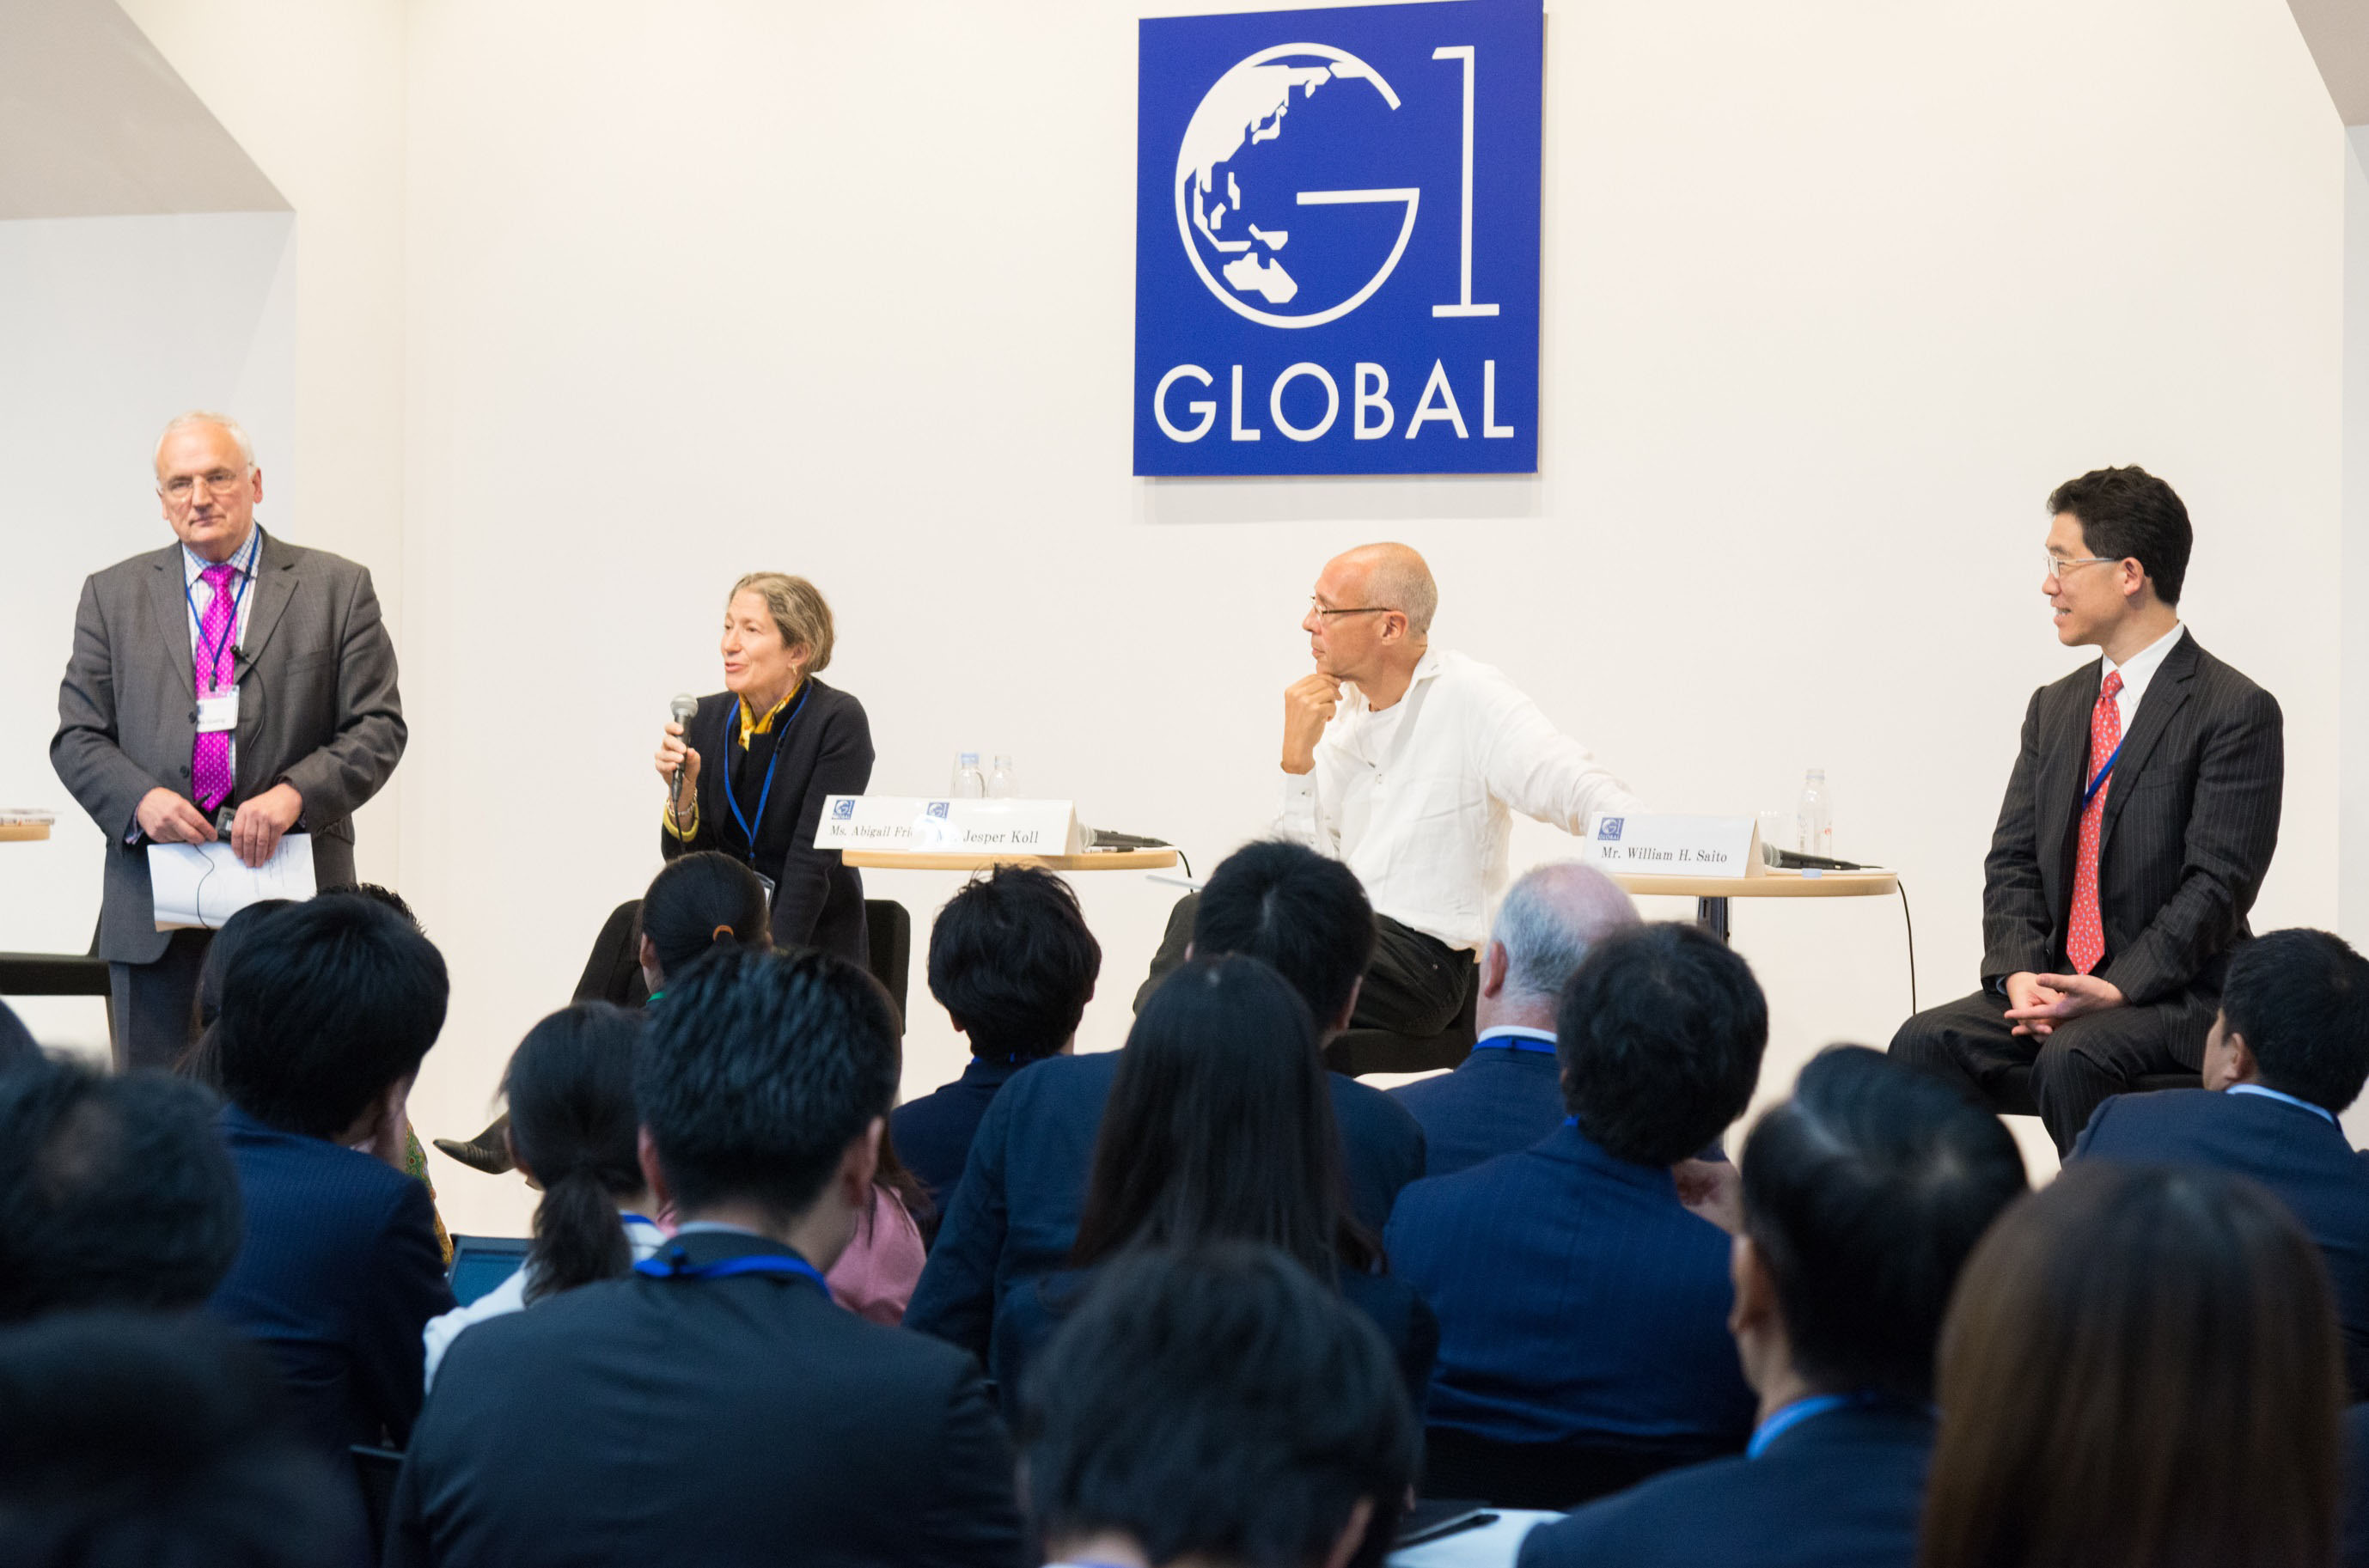 Panelists discuss ways to keep up with the pace of change at the G1 Global Conference hosted by Globis University in Tokyo on Oct. 21. | GLOBIS